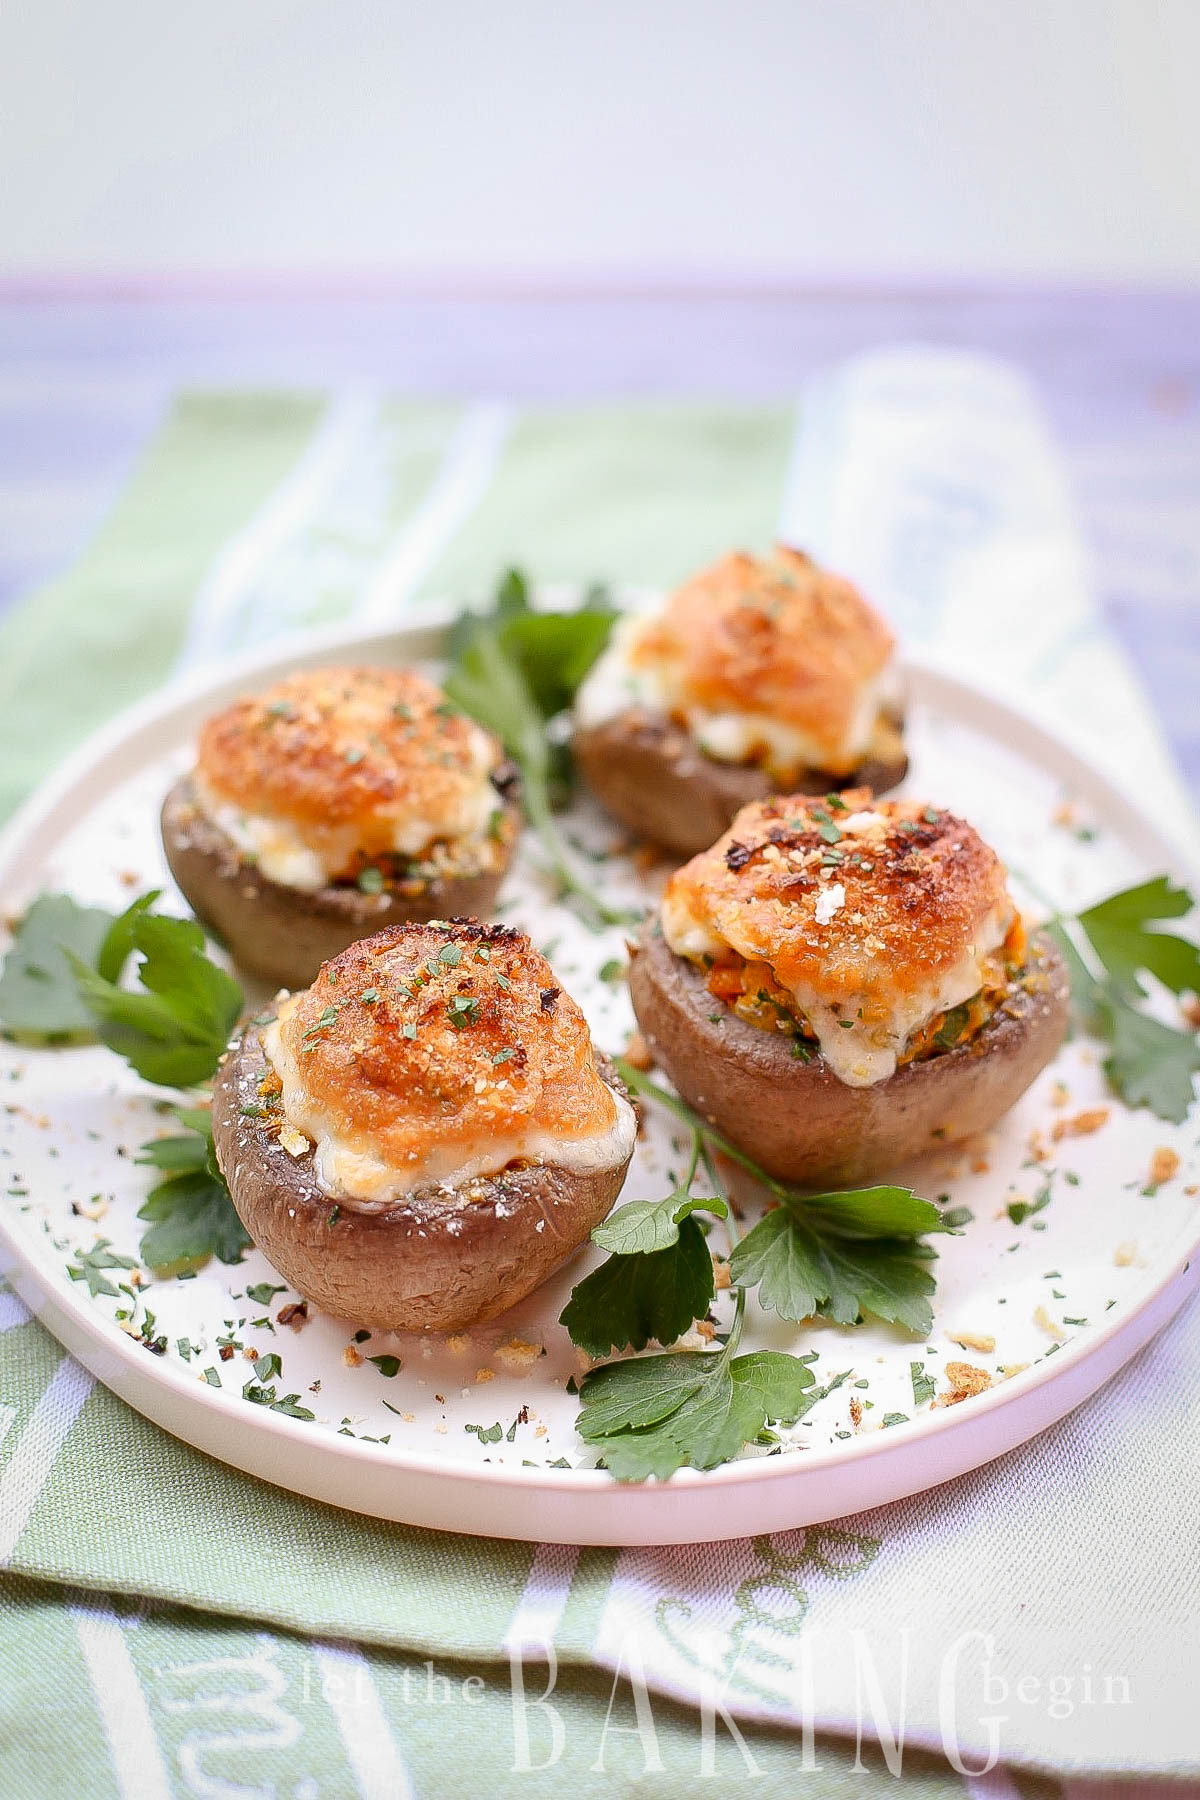 Four cheesy stuffed mushrooms topped with fresh greens on a white tray.